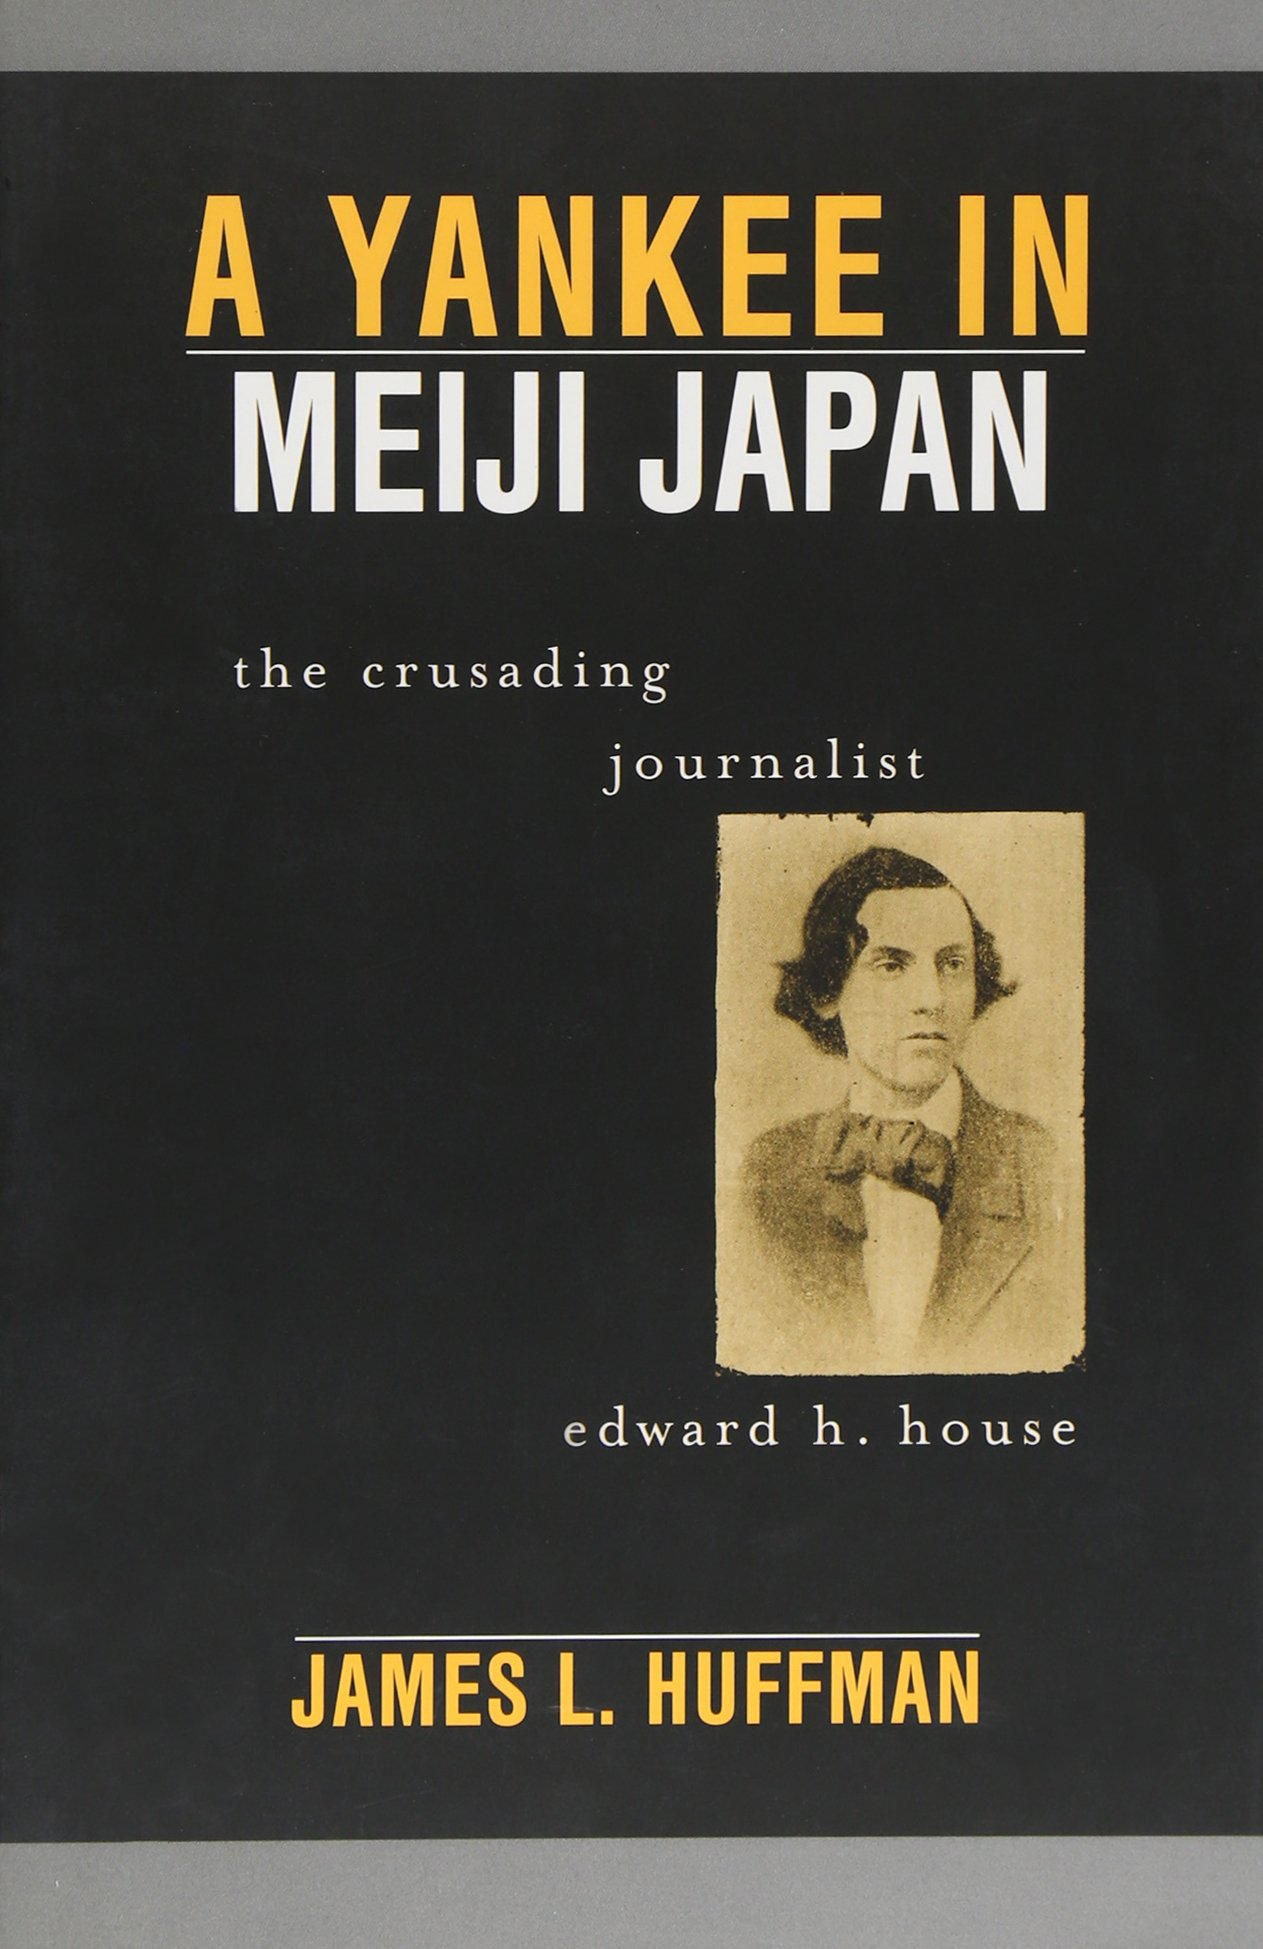 A Yankee in Meiji Japan: The Crusading Journalist Edward H. House